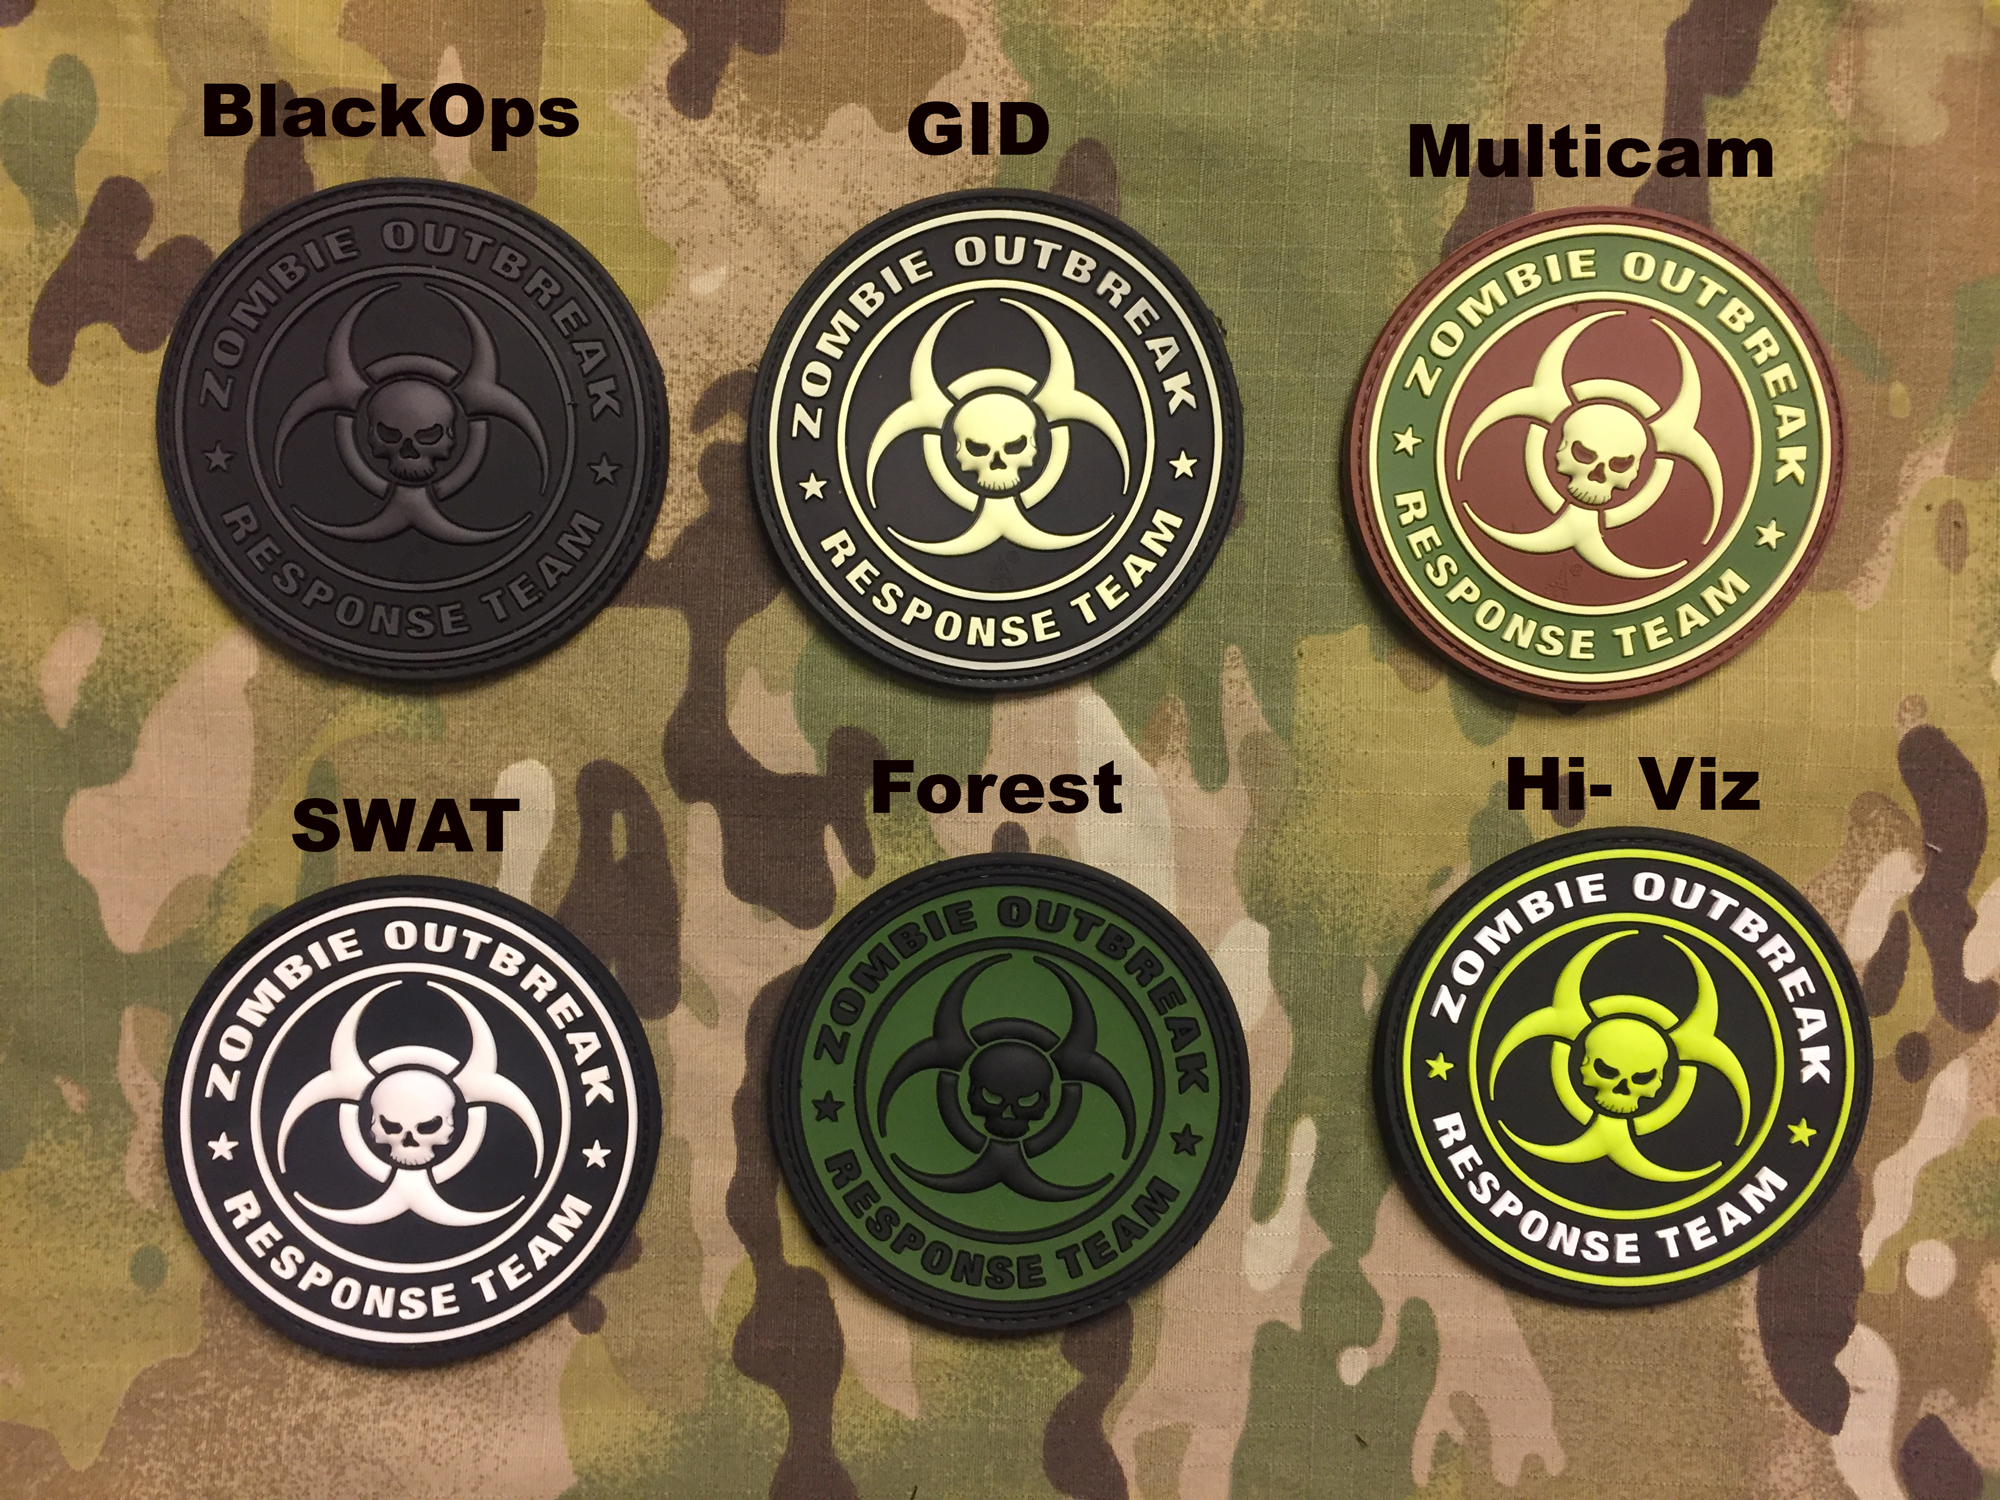 JTG Zombie Outbreak Response Team PVC Patch